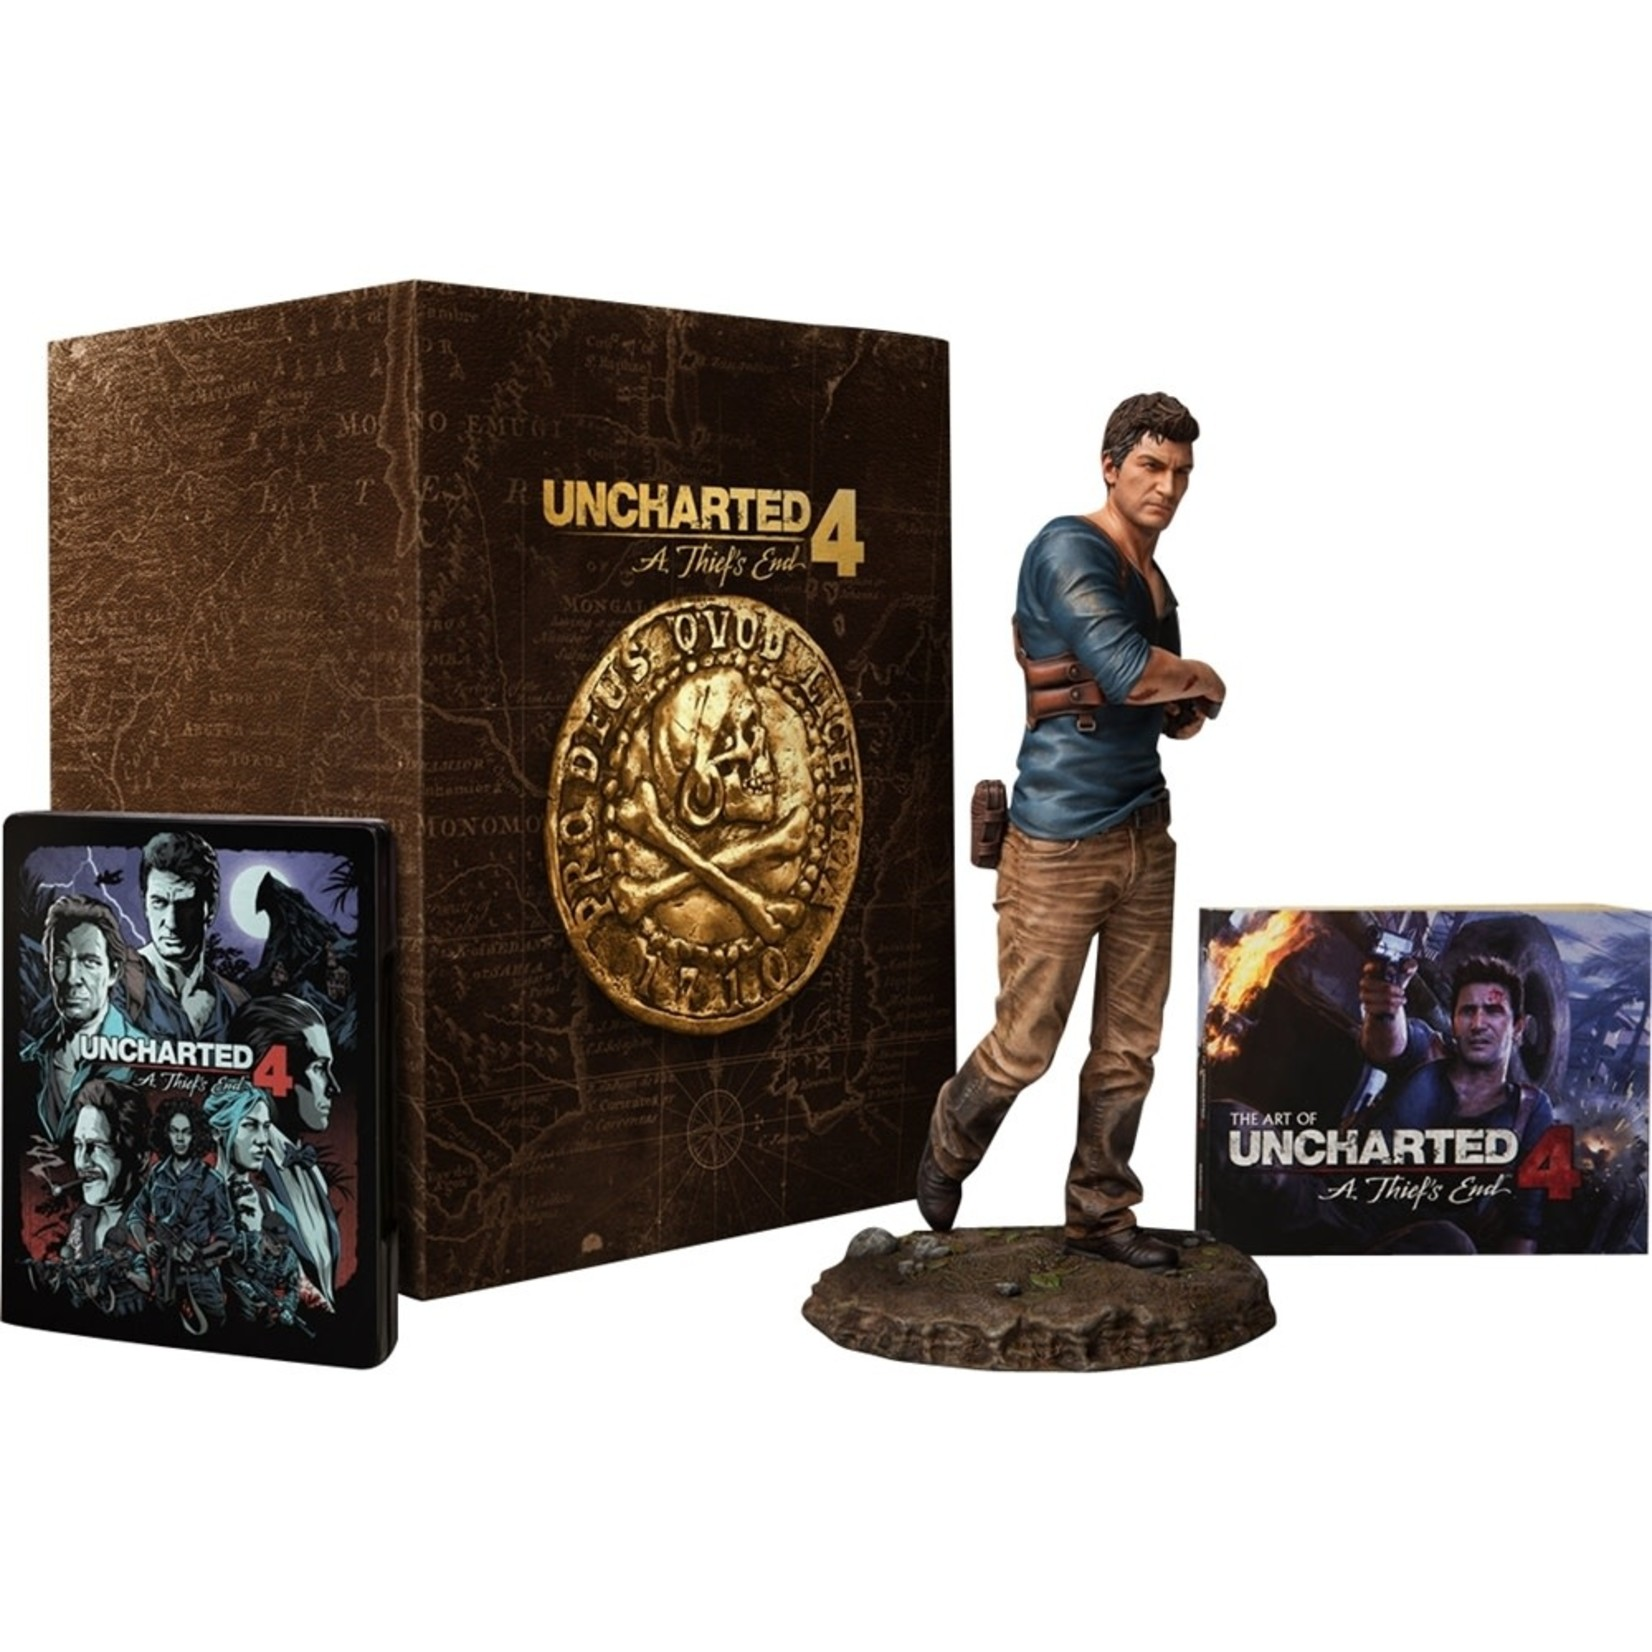 PS4-Uncharted 4 Libertalia Collector's Edition